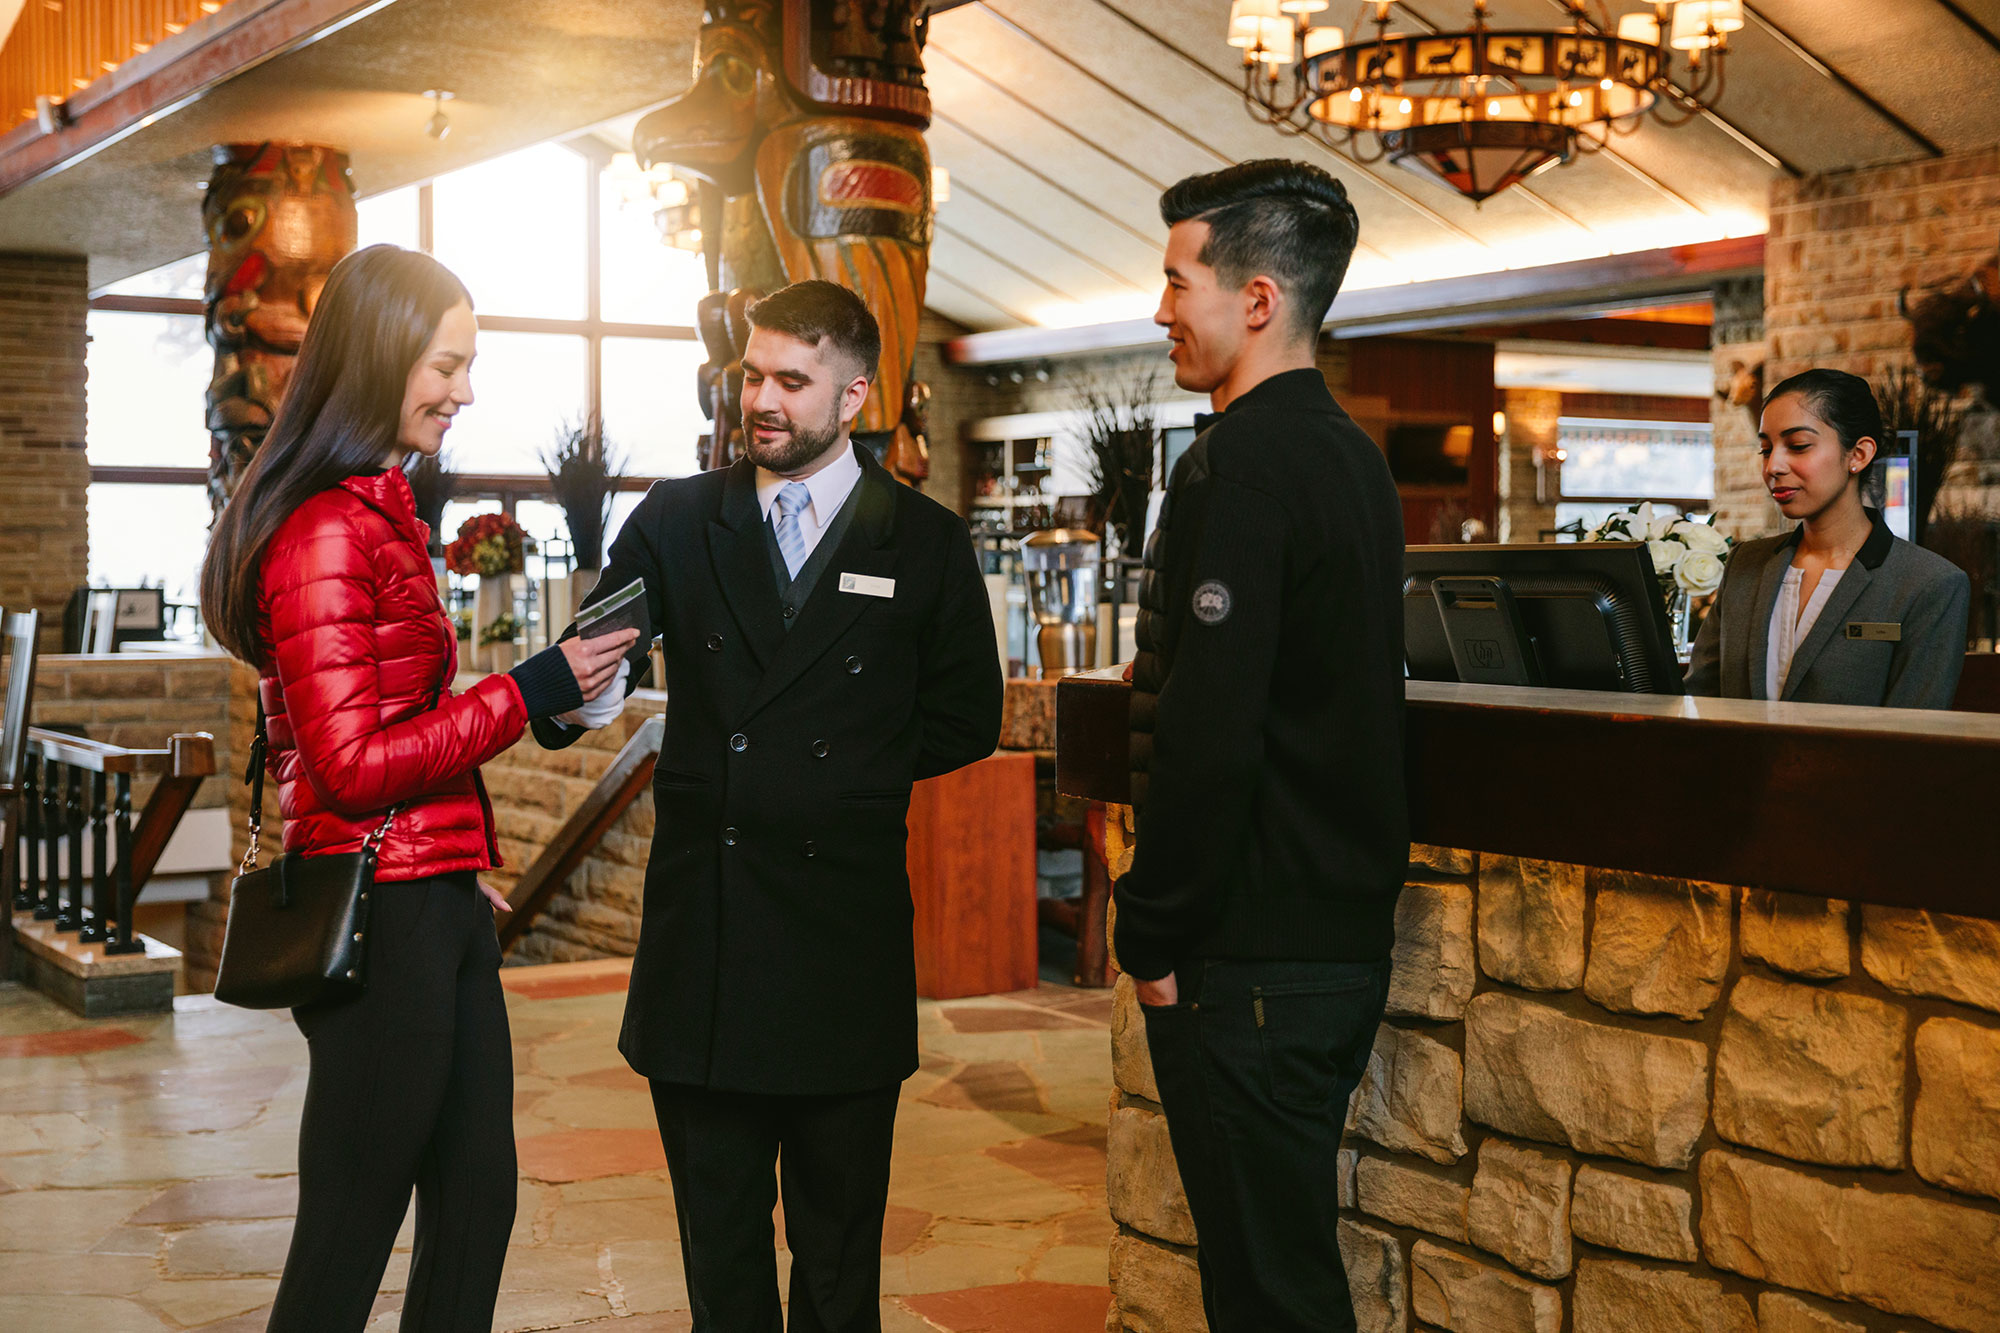 Couple-and-Butler-Arrival---Lobby